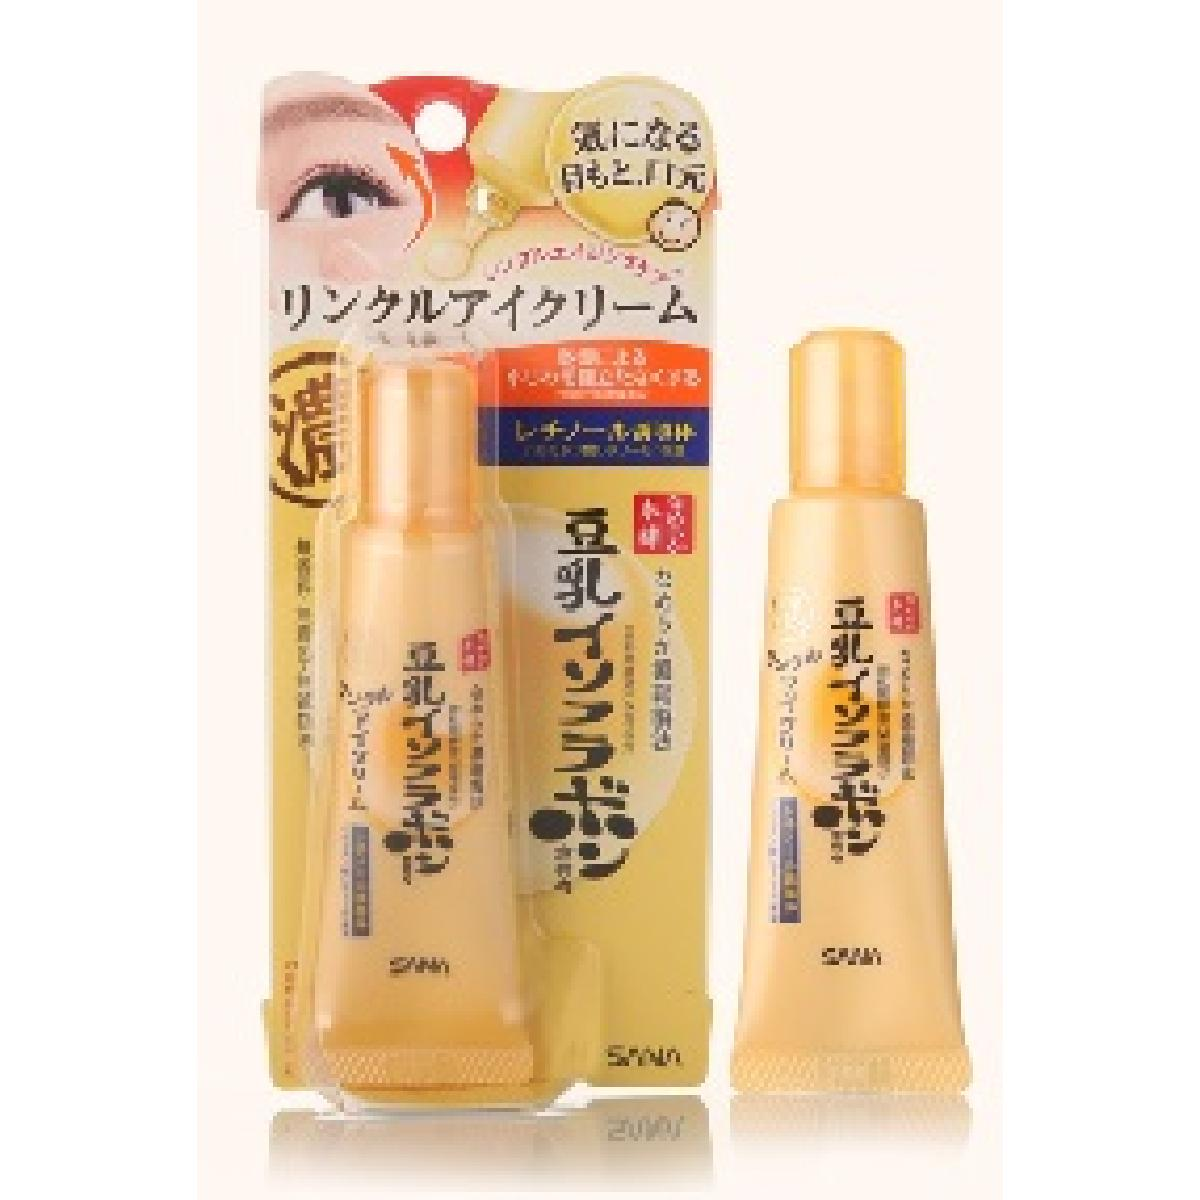 Japan SANA Nameraka Honpo Soy Milk Isoflavone Wrinkle Eye Cream 25g (Parallel import)